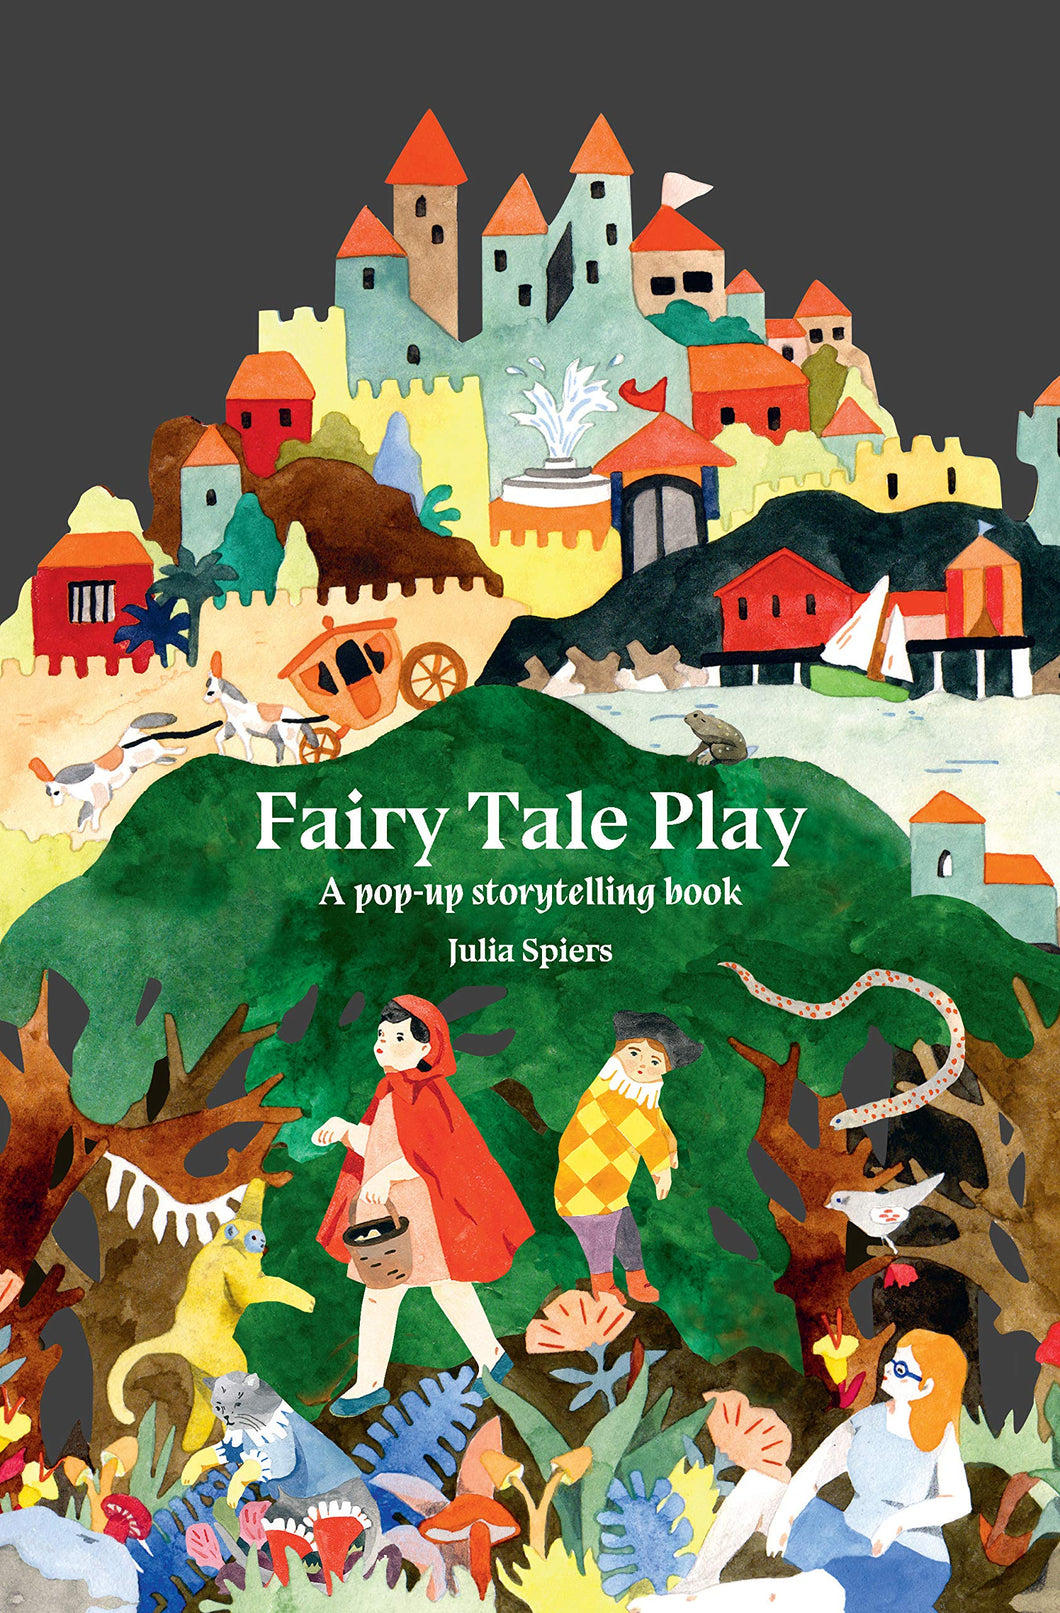 Fairy Tale Play A Pop-up Storytelling Book - Me Books Asia Store